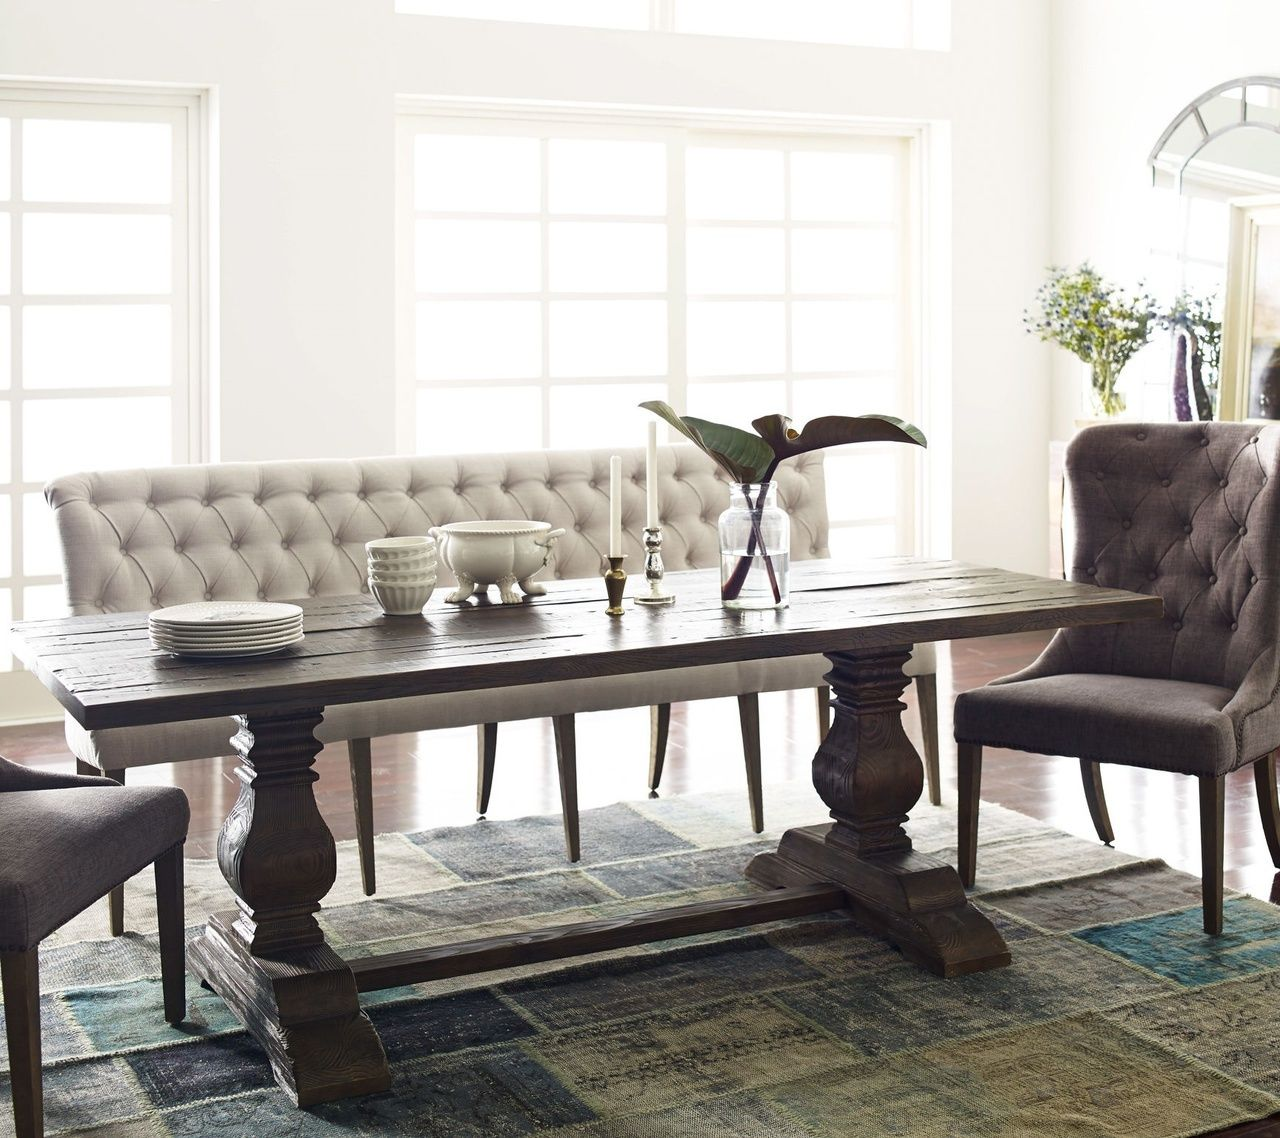 dining set with bench and chairs chair covers linens lebanon church road french tufted upholstered banquette bedroom